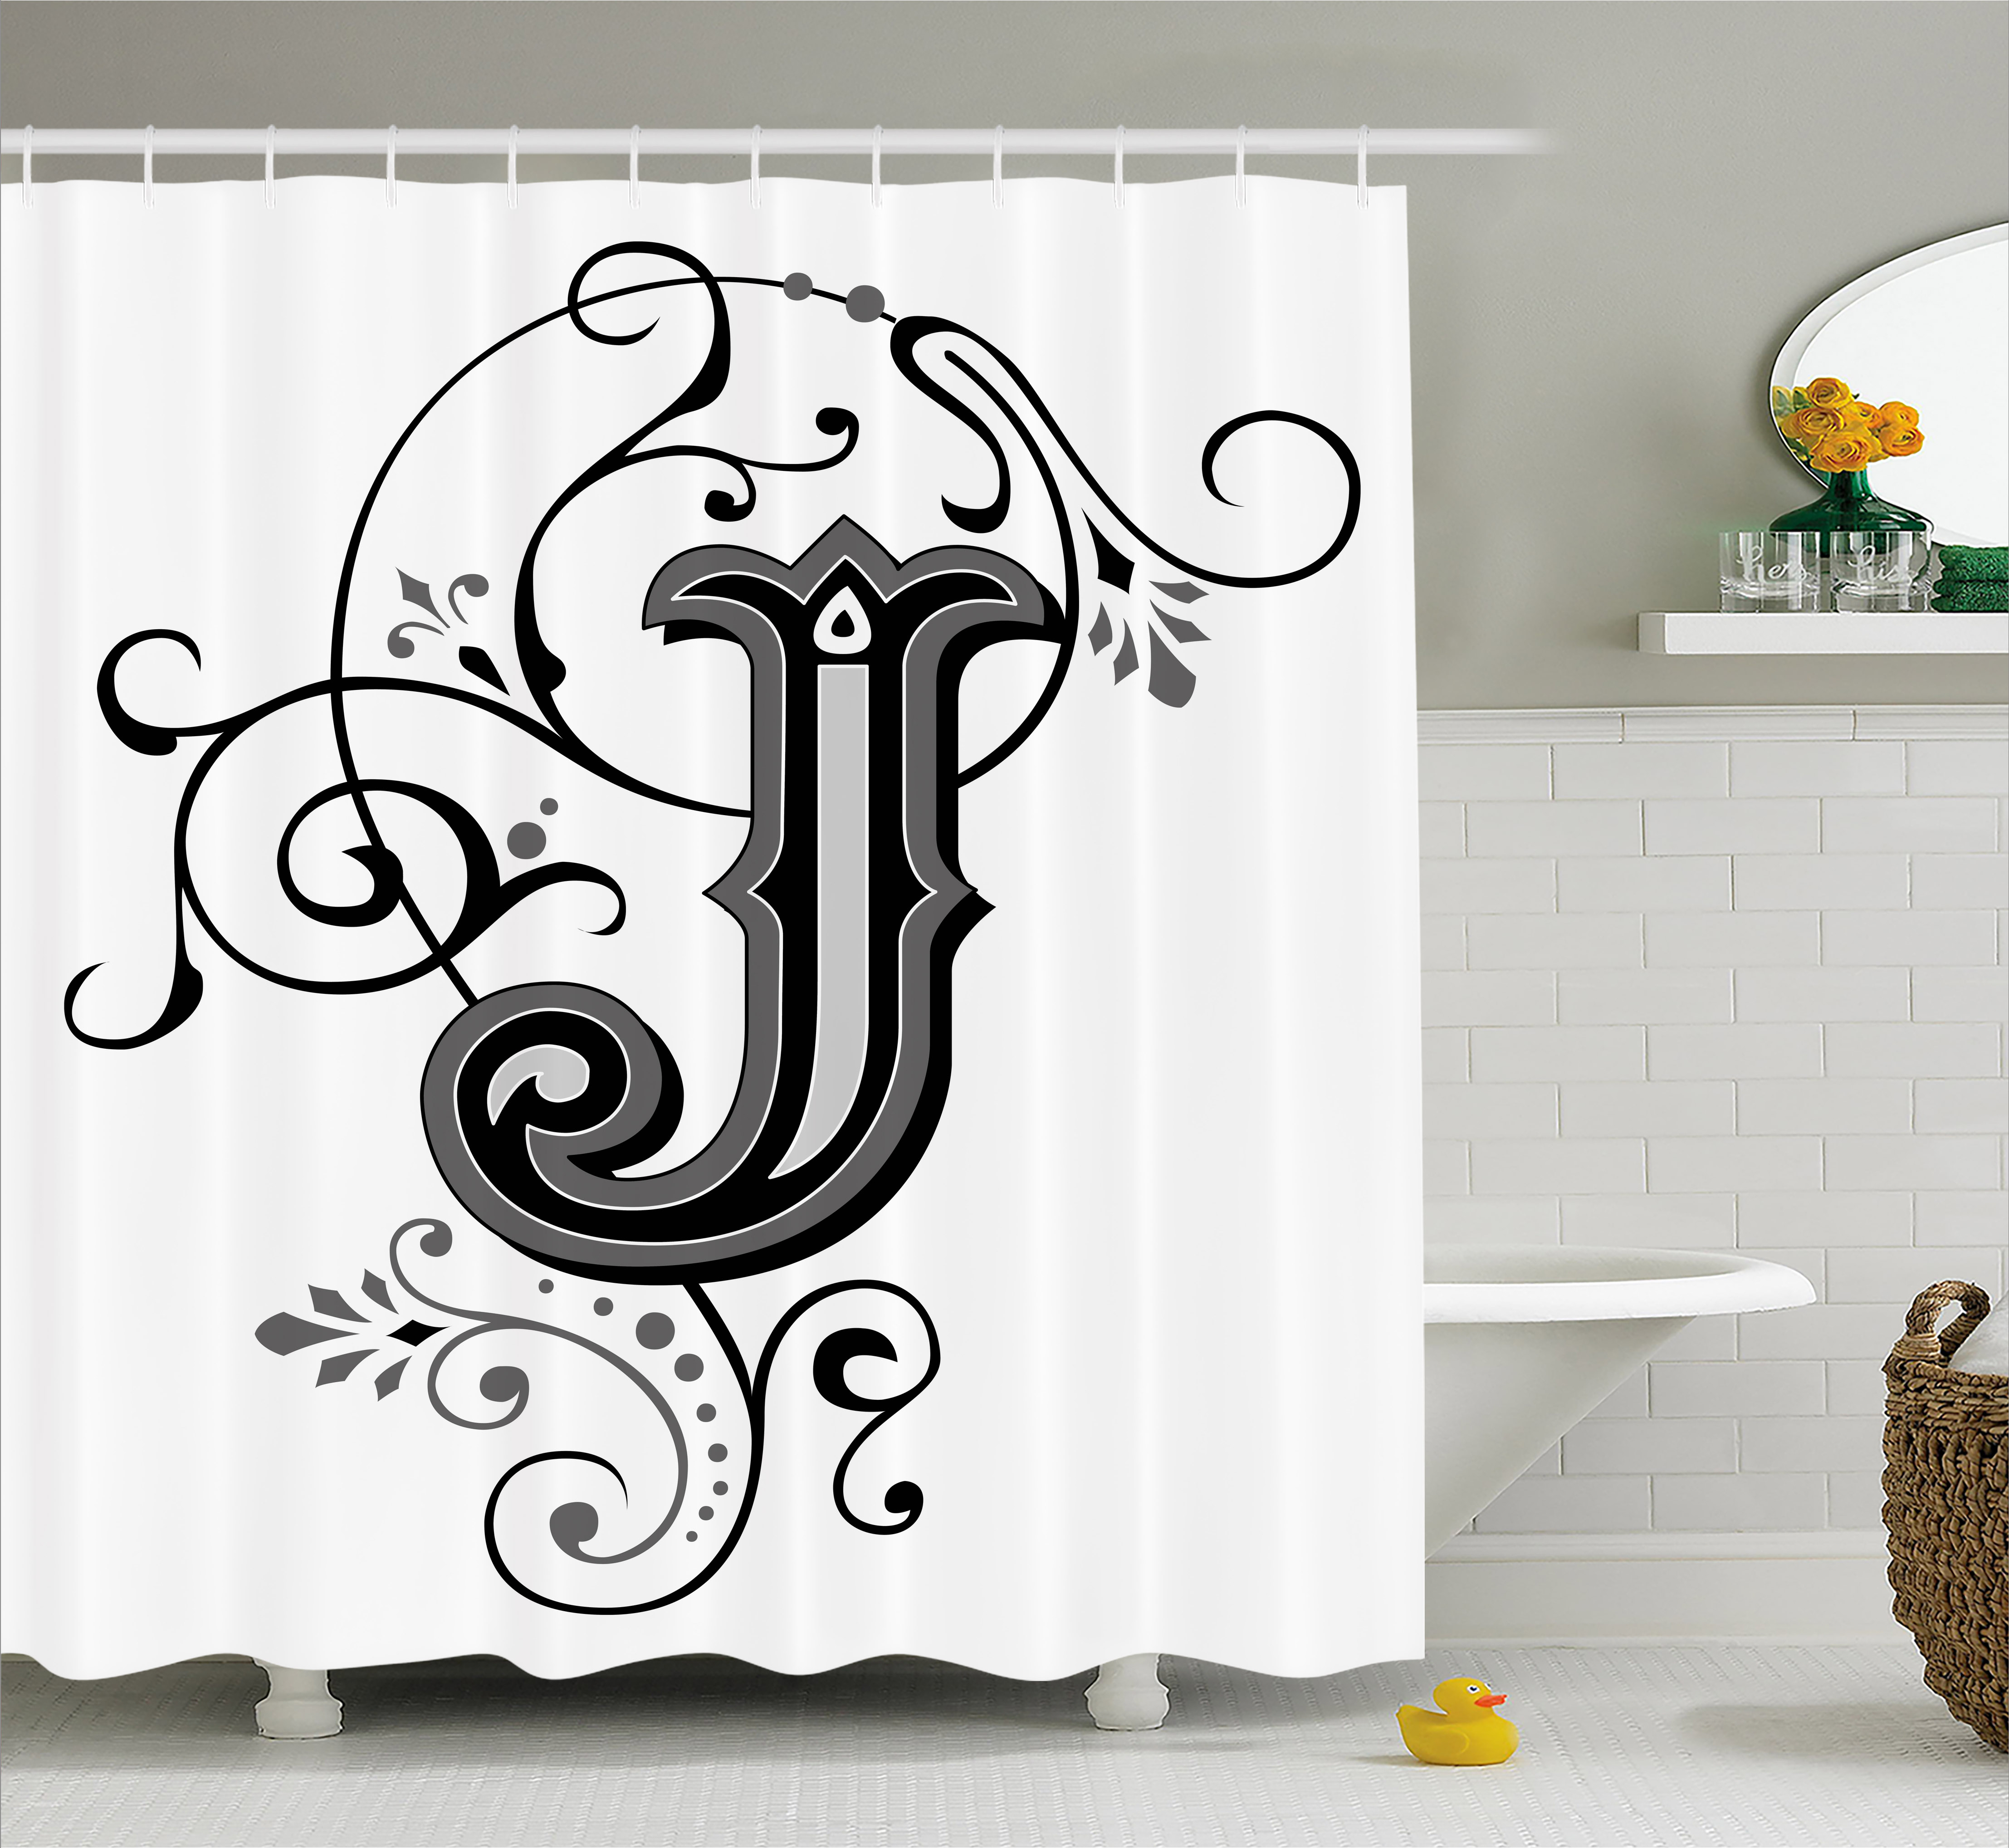 Letter J Shower Curtain Shabby Chic Classic Written Medieval Initials J Royal Noble Family Character Fabric Bathroom Set With Hooks Black Grey